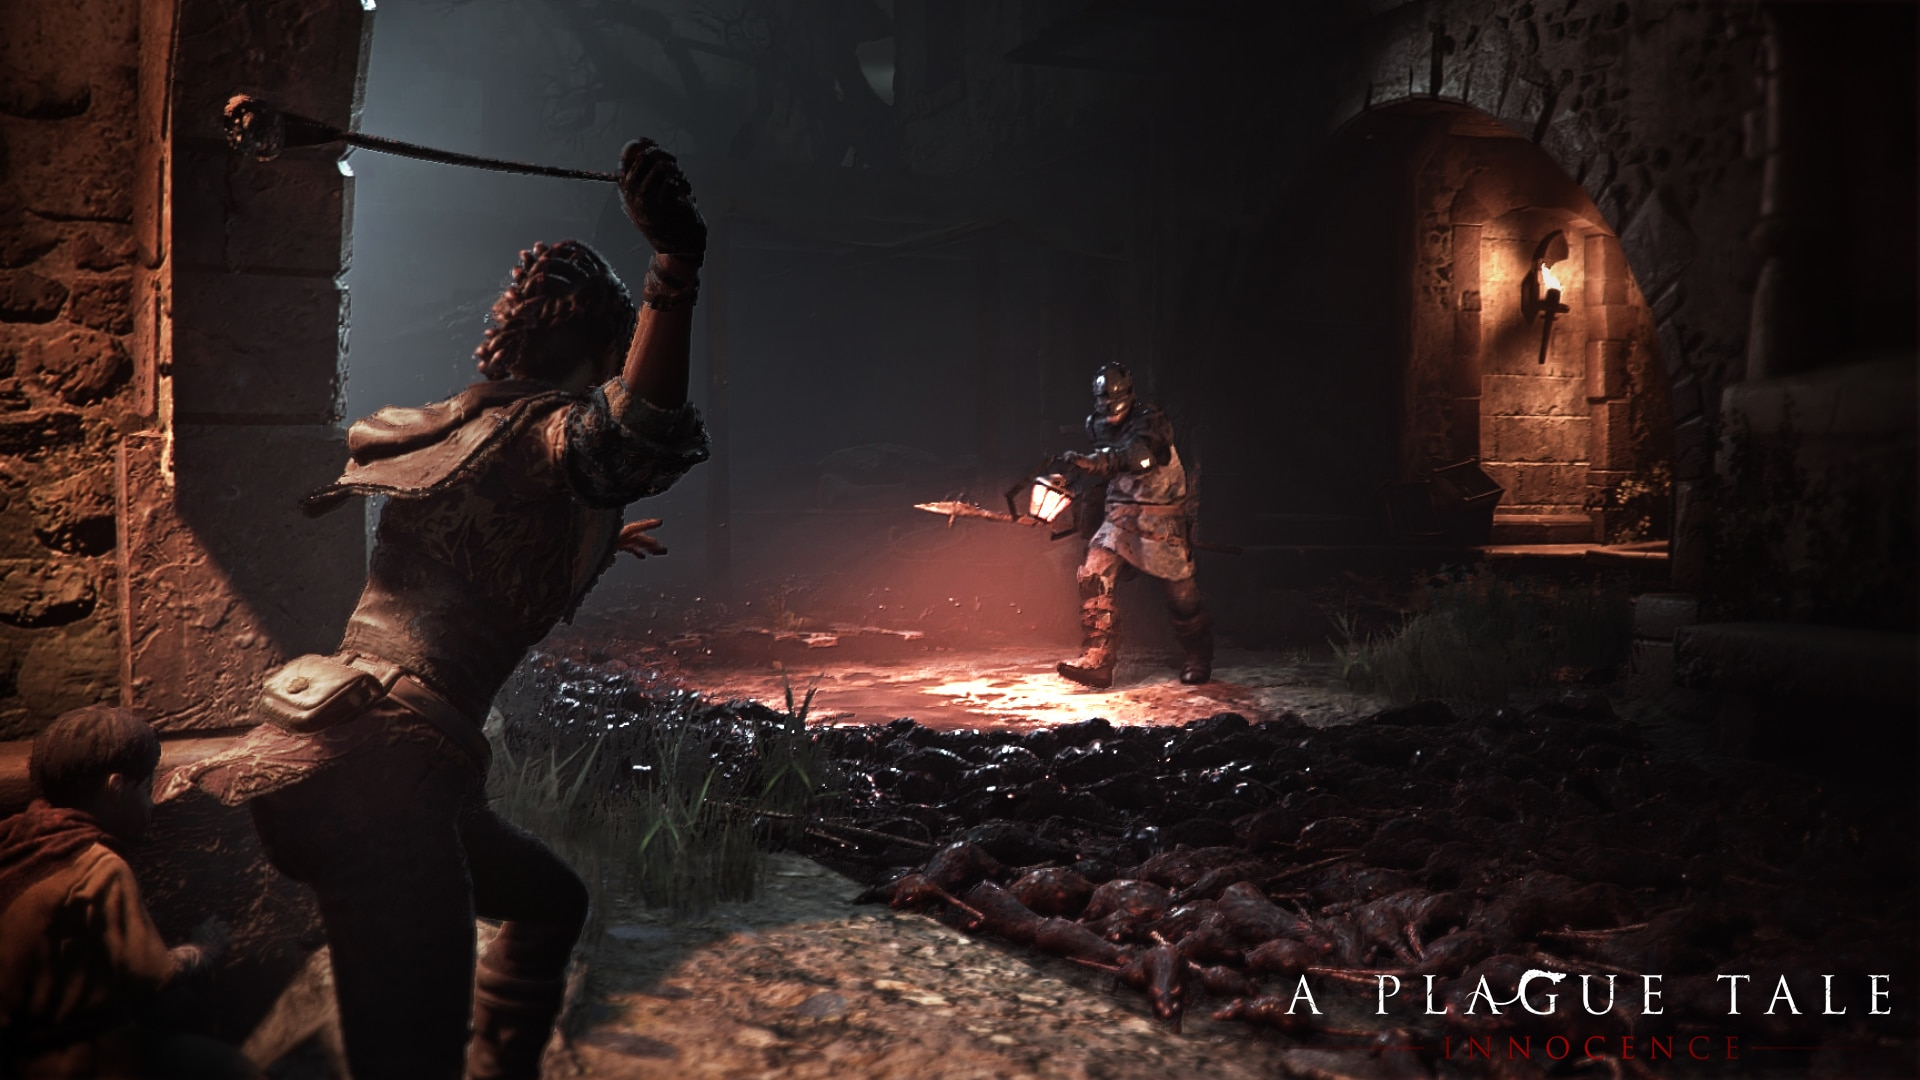 A Plague Tale Innocence 05 - E3 2018: Getting Down With The Sickness In A PLAGUE TALE: INNOCENCE